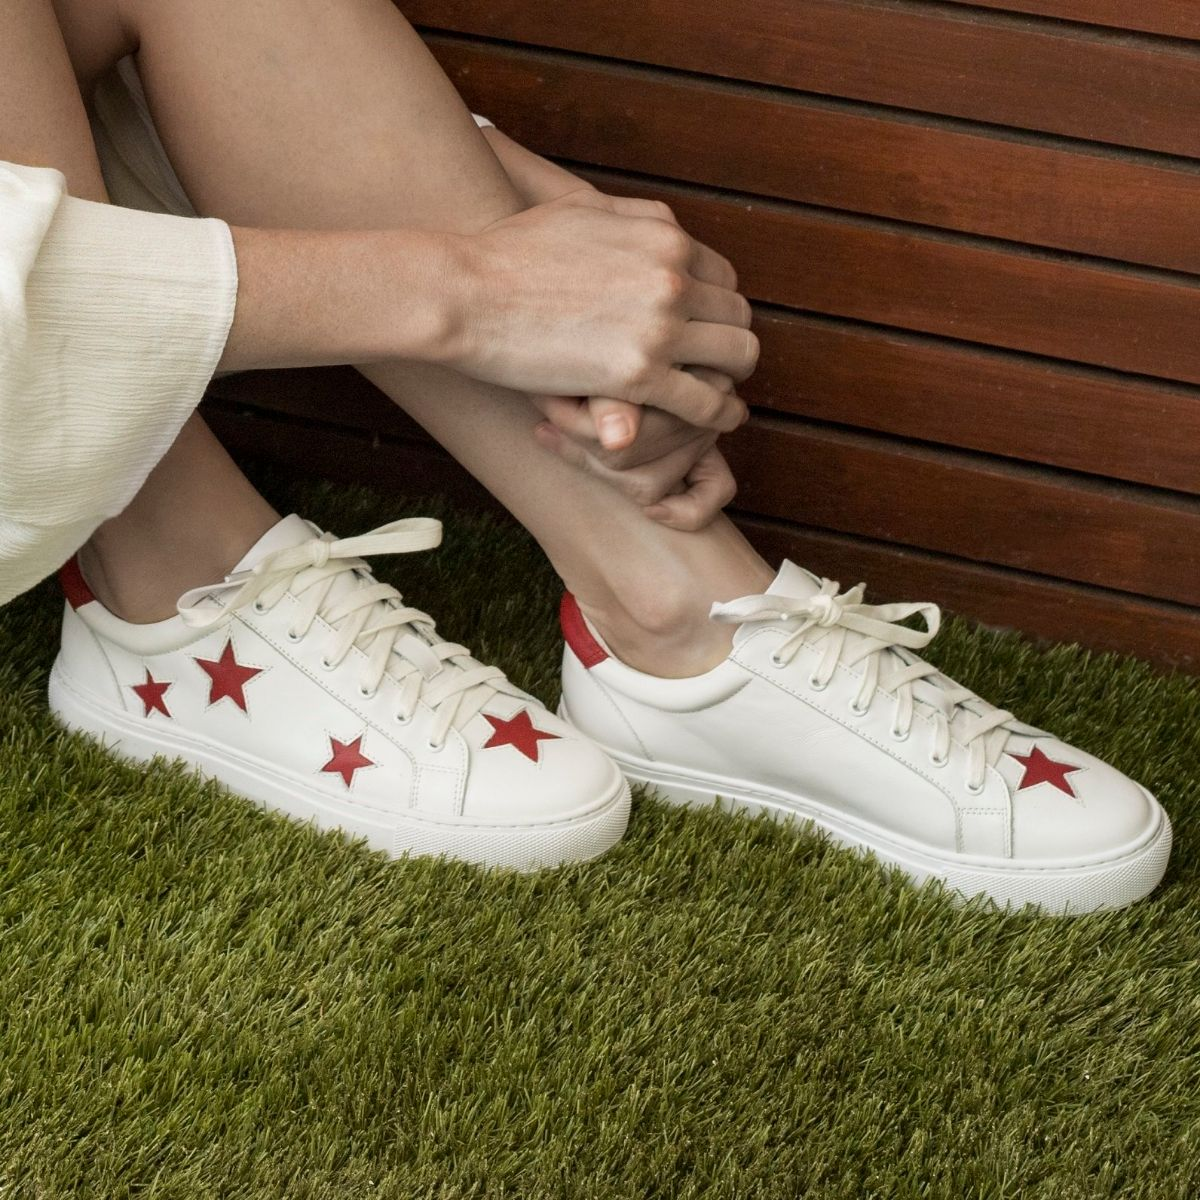 Cocorose London Hoxton White with Red Stars Leather Trainers